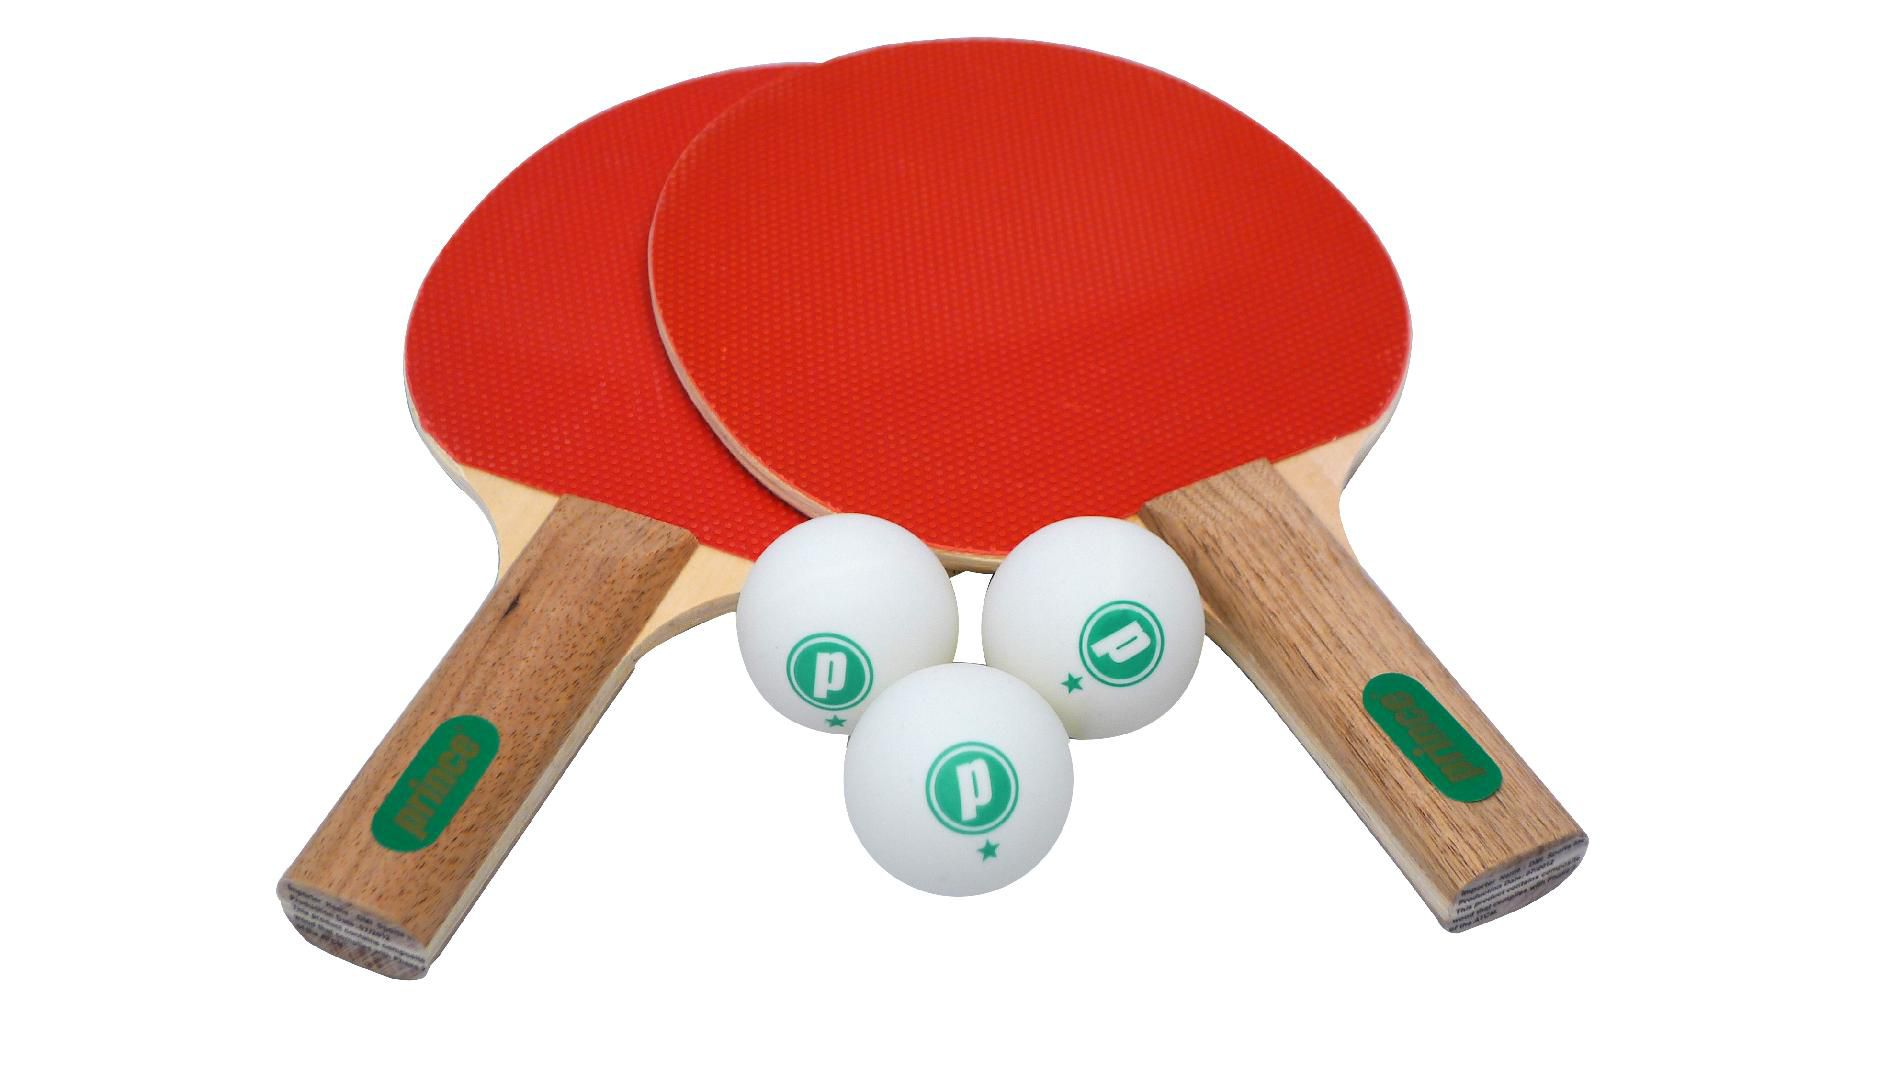 Prince Table Tennis Set - 2 Player